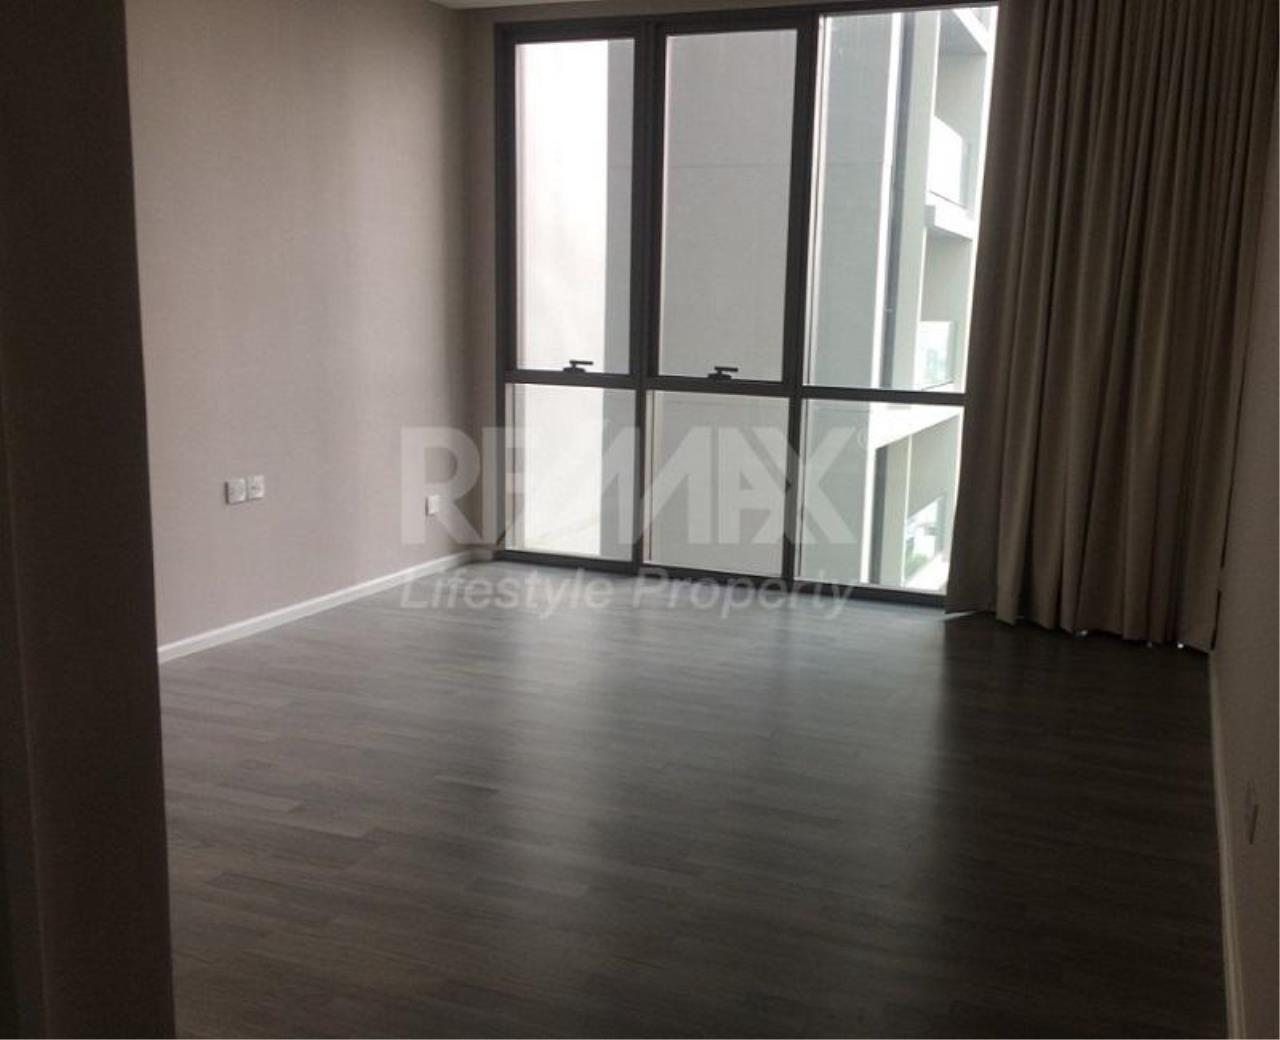 RE/MAX LifeStyle Property Agency's The Room Sukhumvit 69 2